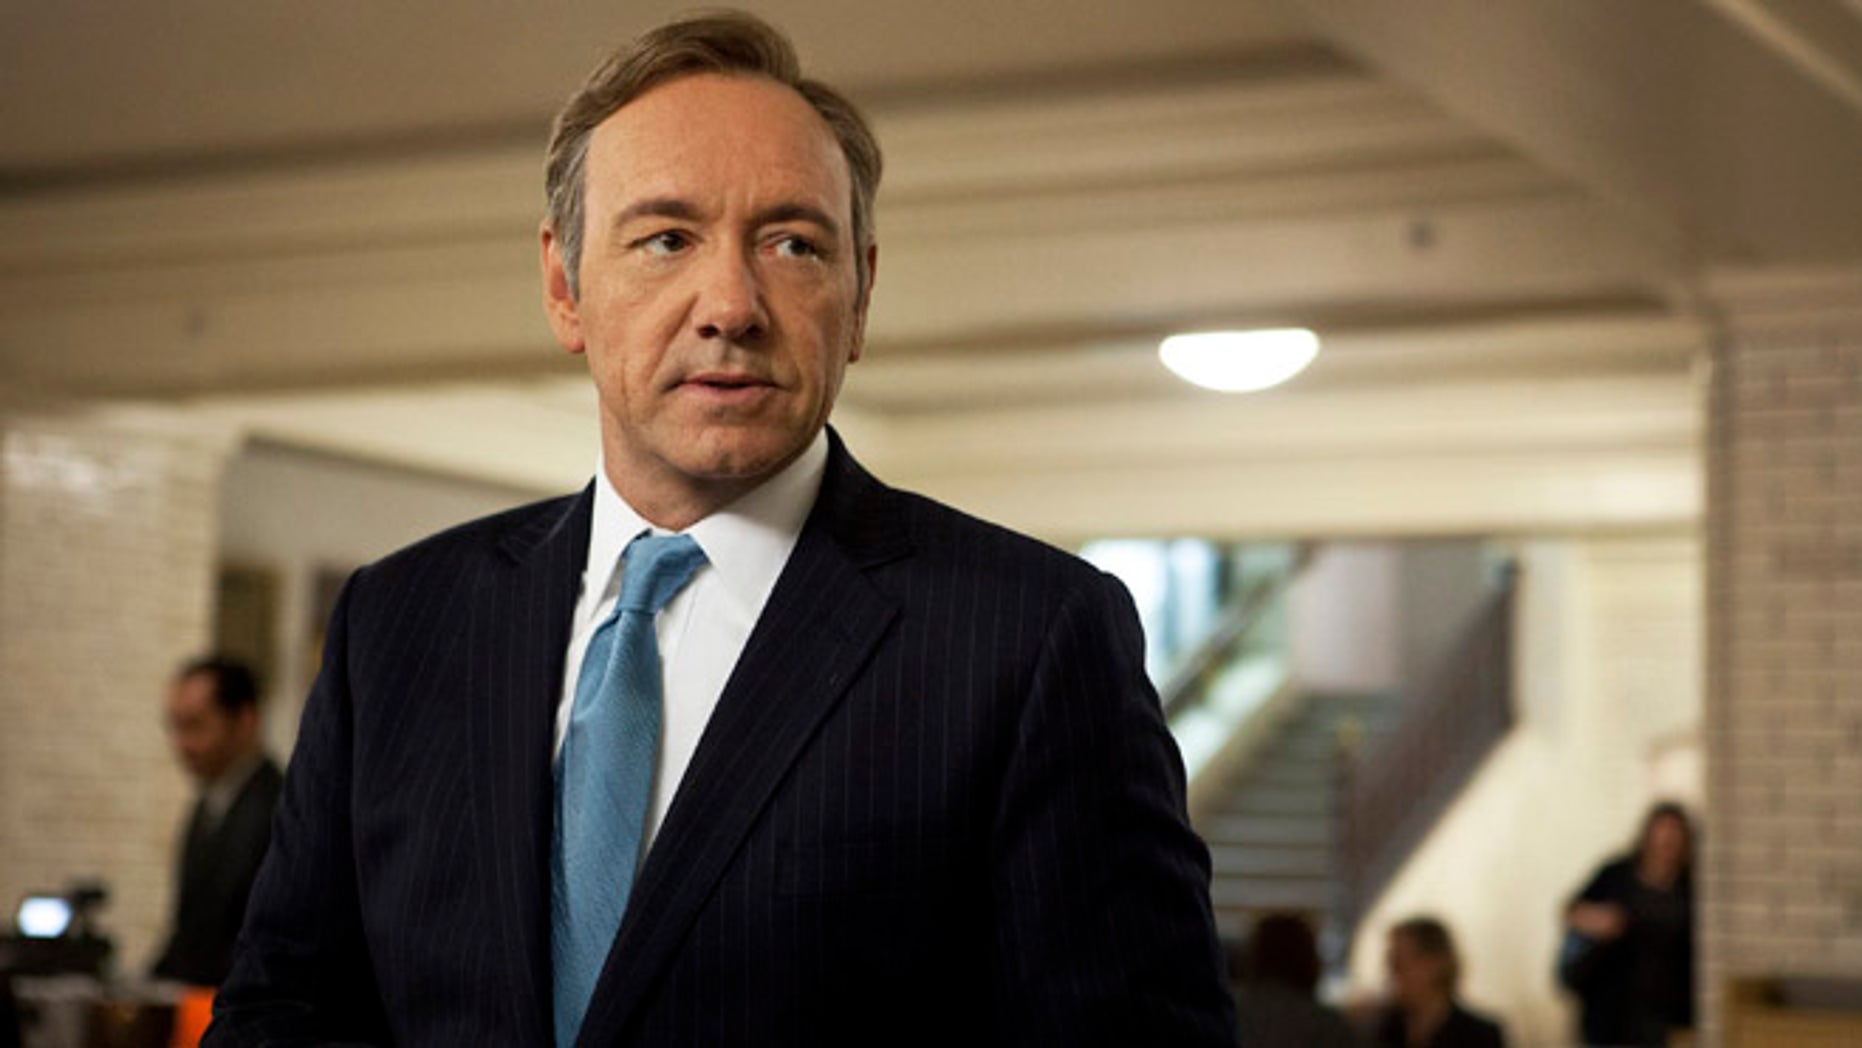 Kevin Spacey as U.S. Congressman Frank Underwood in a scene from the Netflix original series 'House of Cards.'